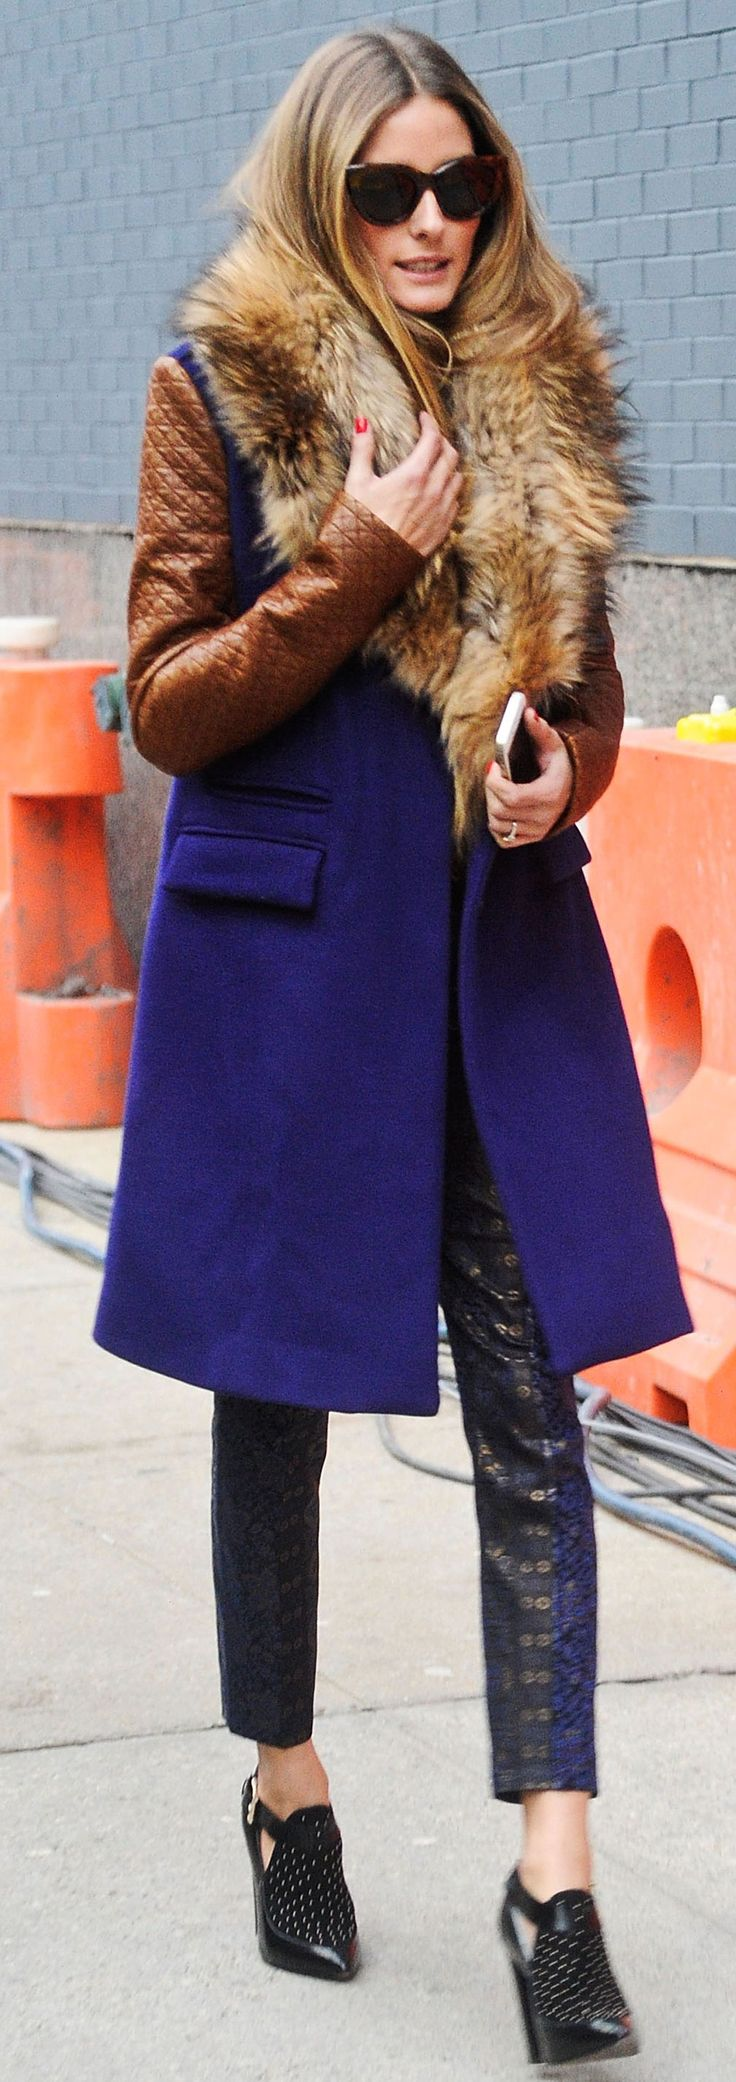 Olivia Palermo's Fashion Week Outfits Could Rival Any Runway